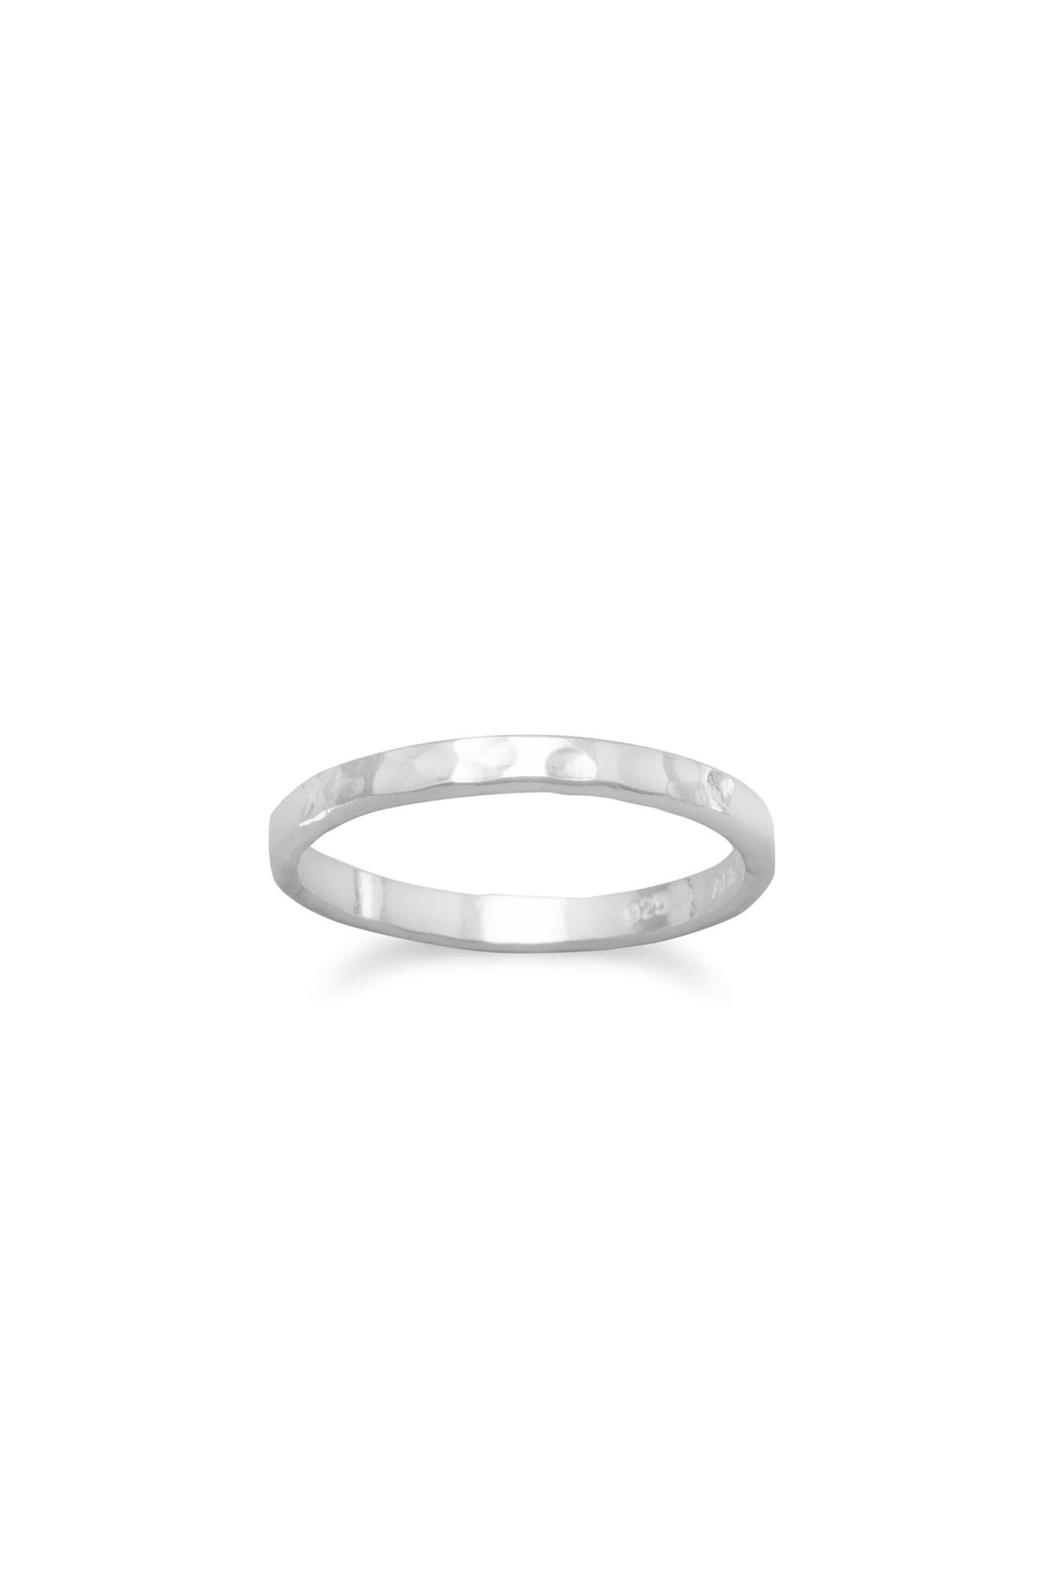 Wild Lilies Jewelry  Hammered Silver Band - Main Image